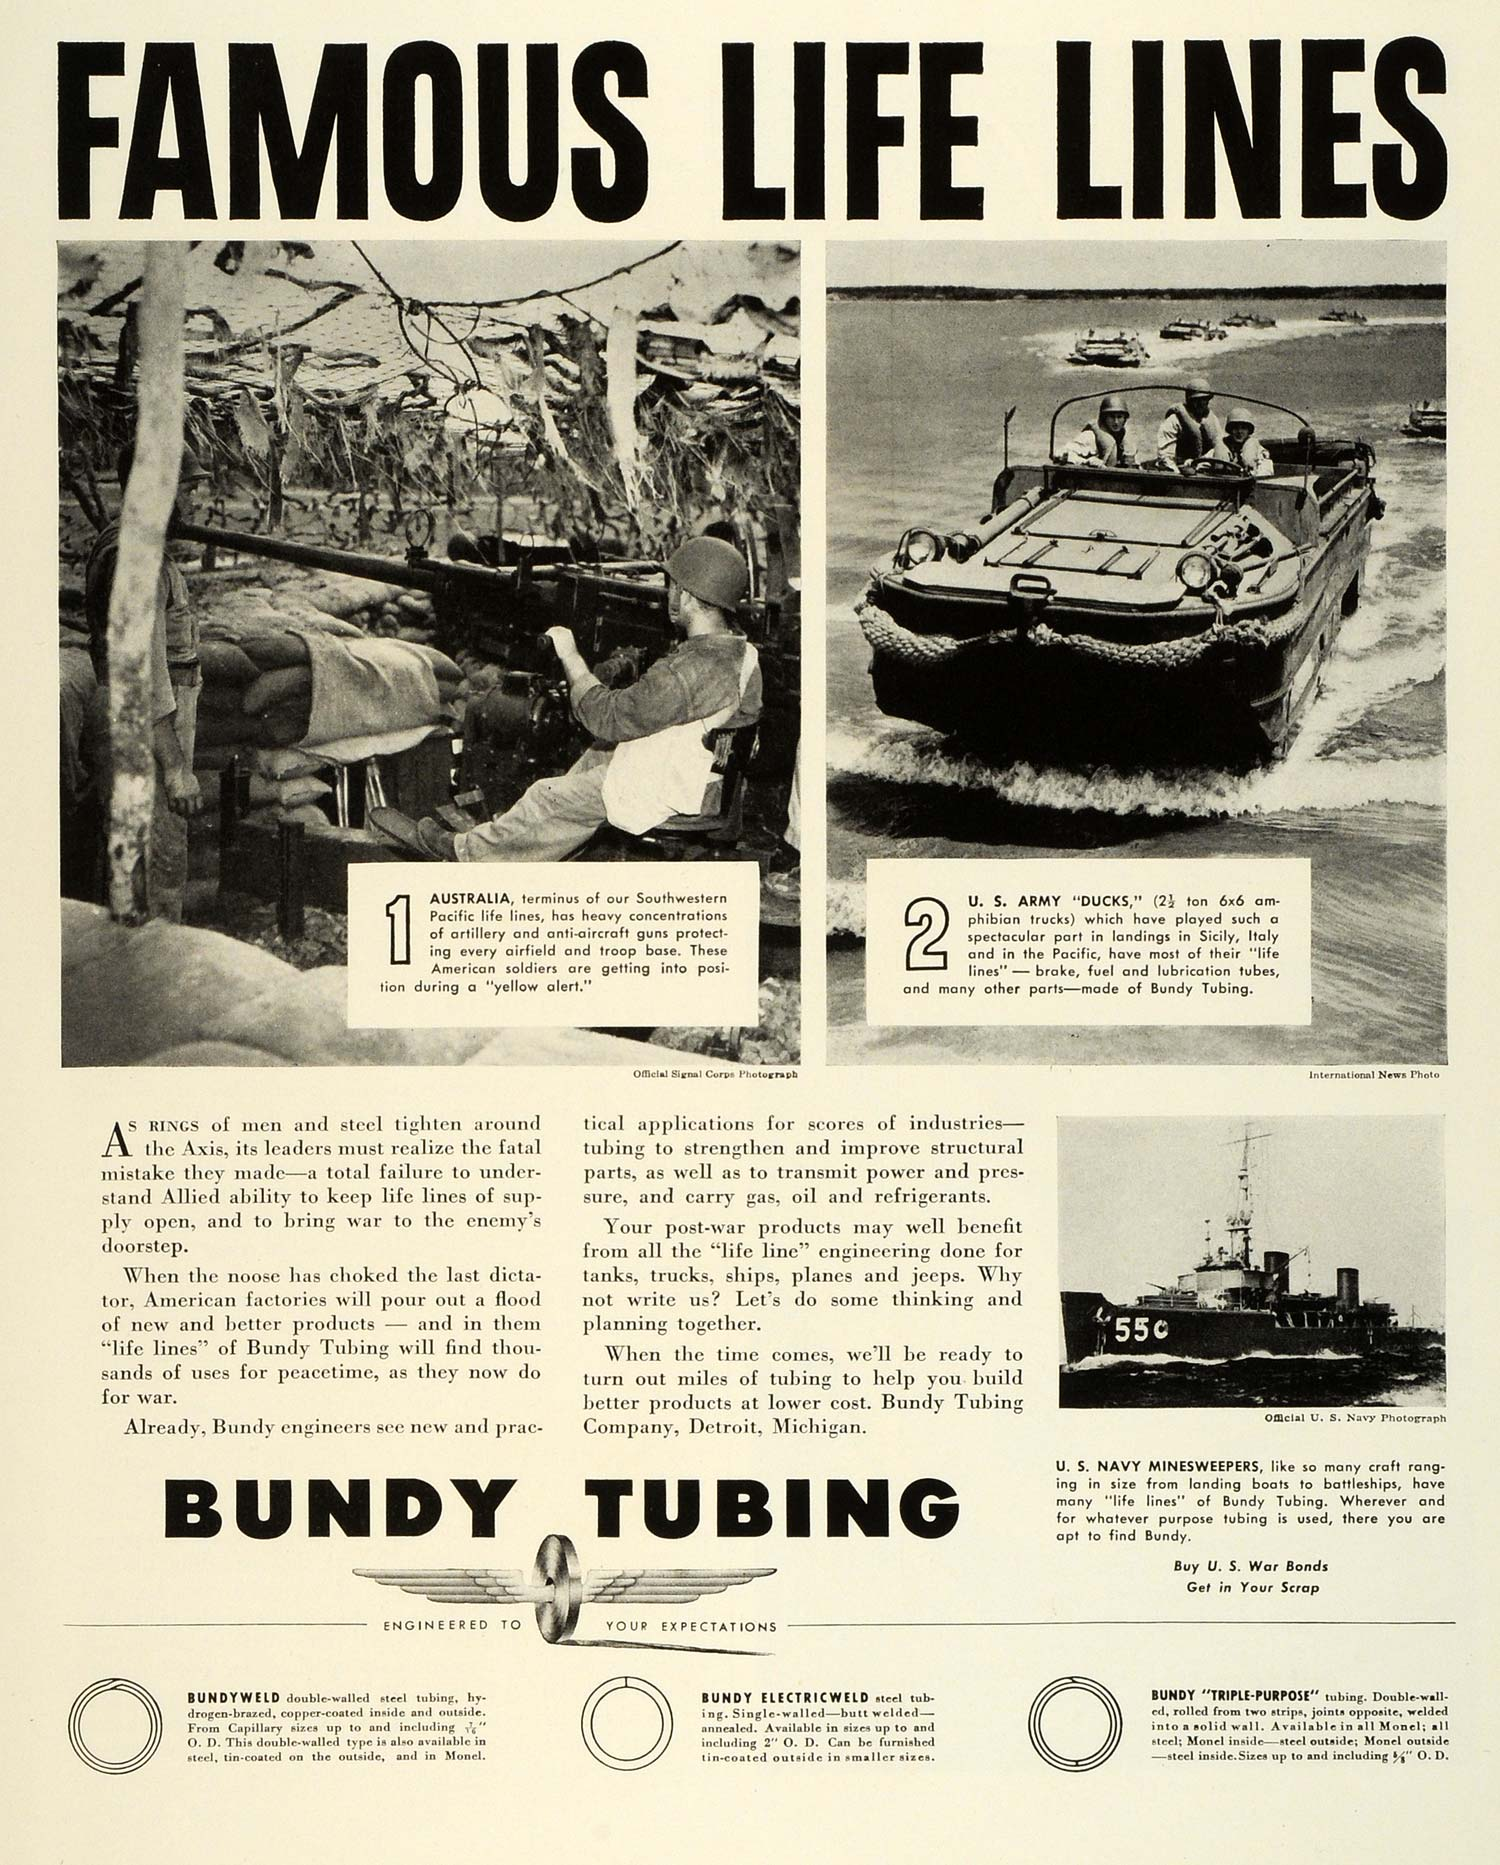 1943 Ad Bundy Tubing Navy Minesweepers Army Ducks Weapons WWII War FZ6